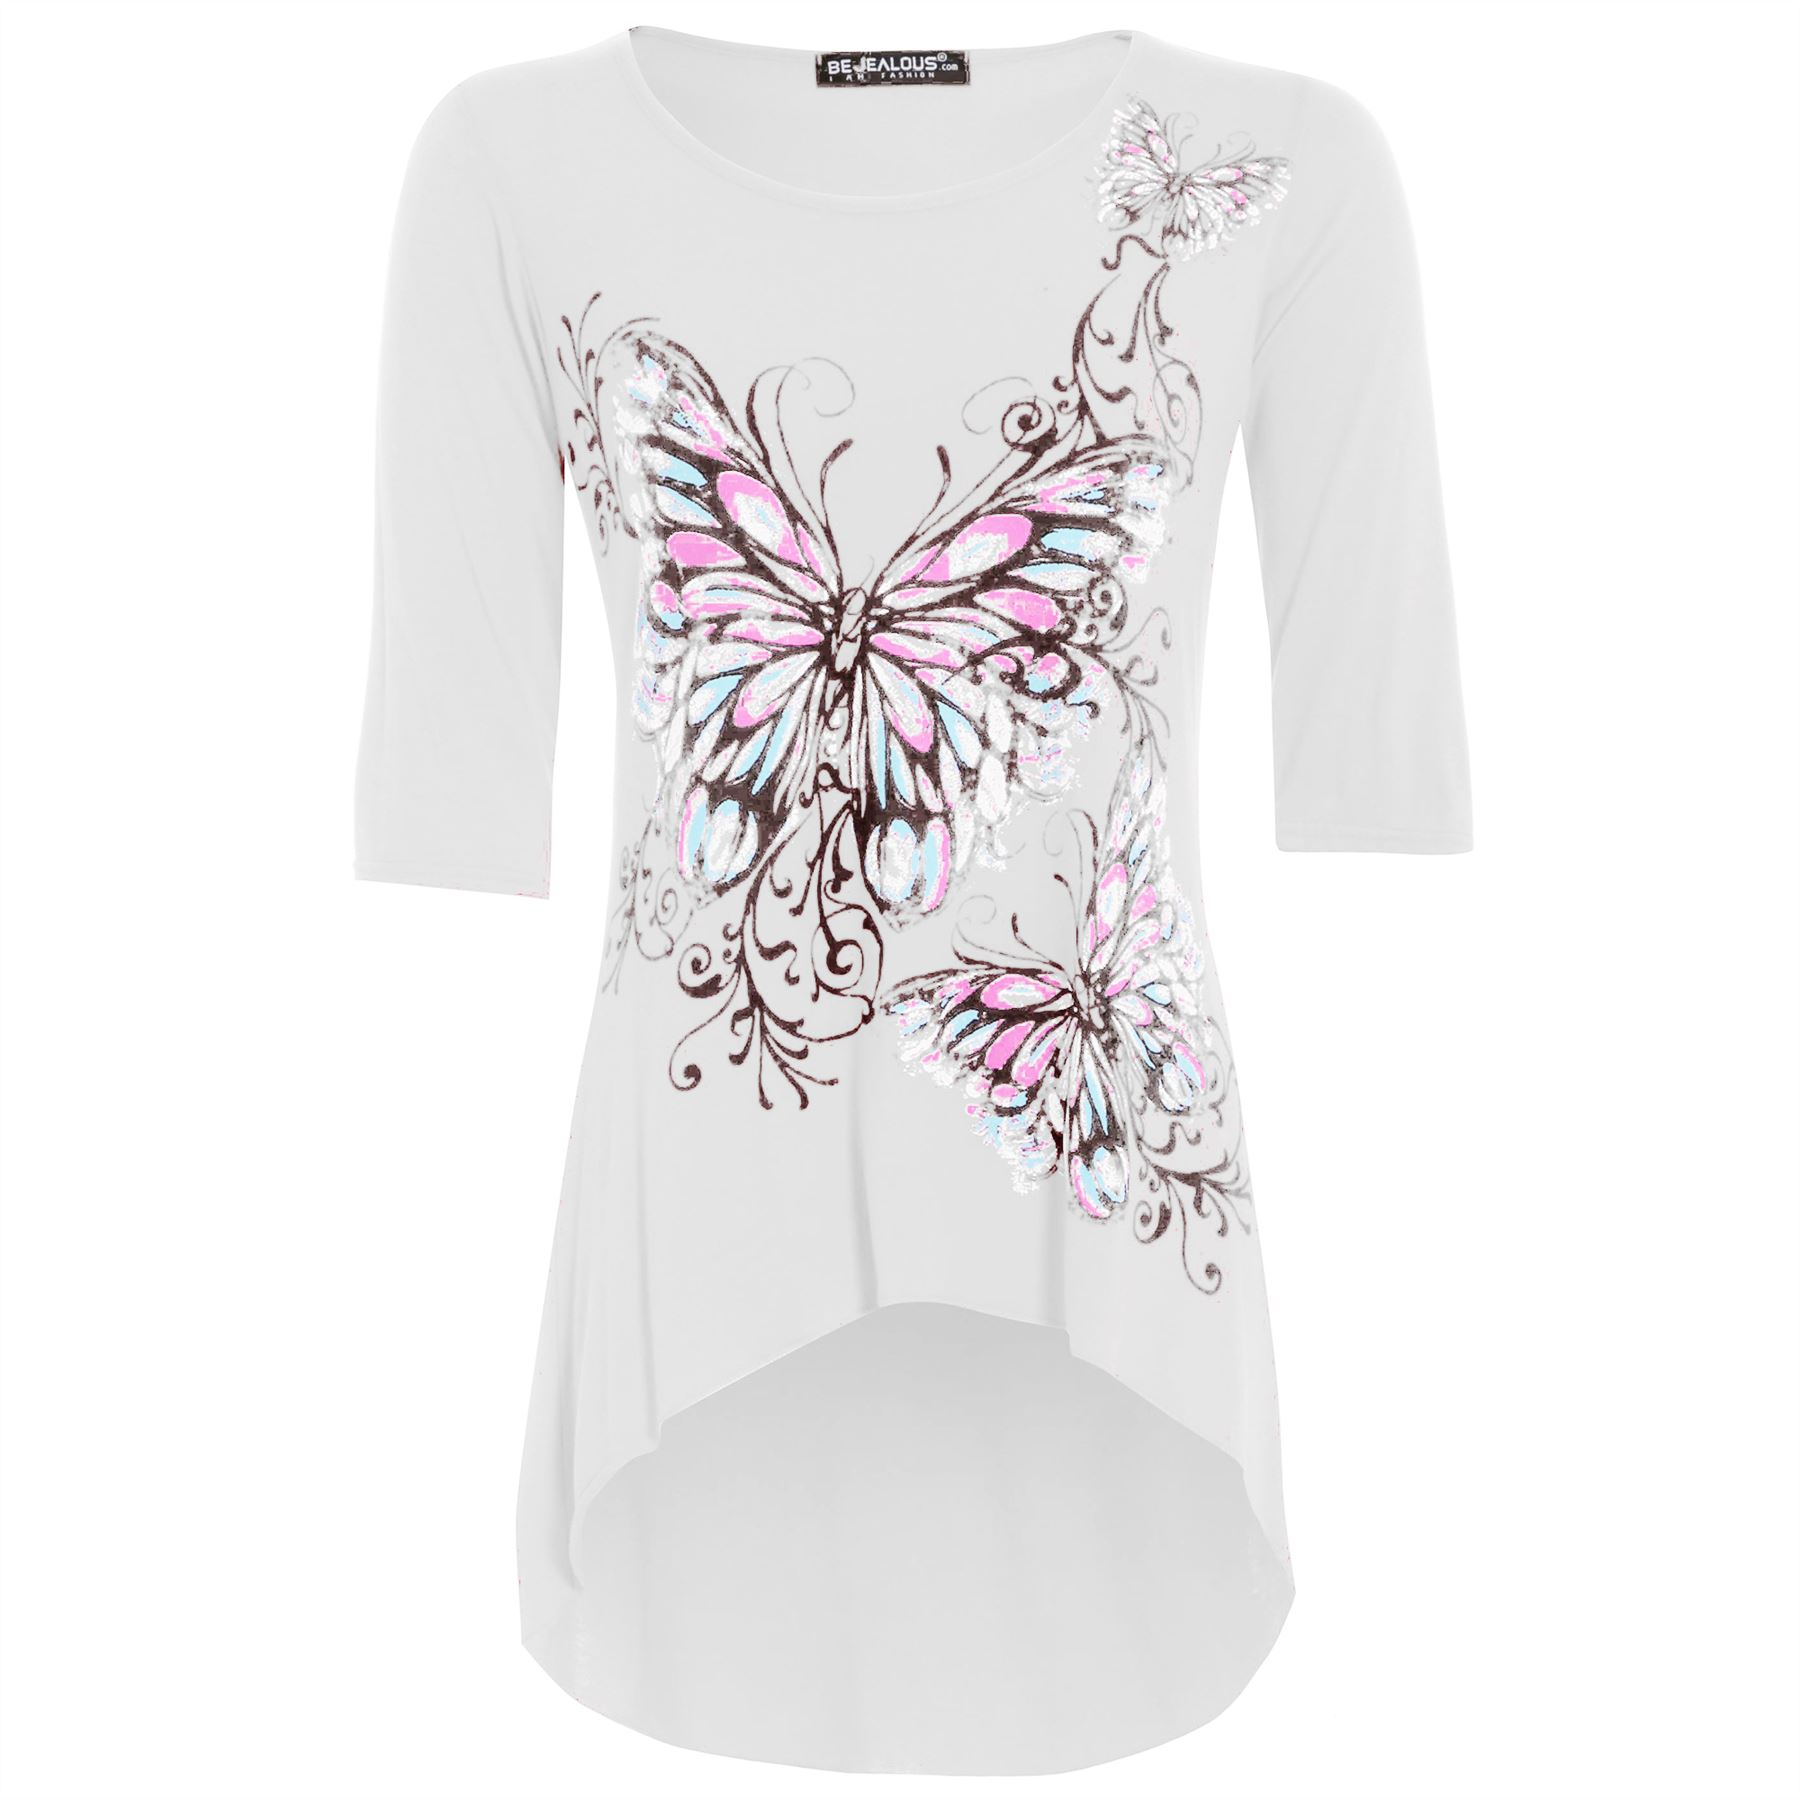 Find great deals on eBay for women butterfly tops. Shop with confidence.